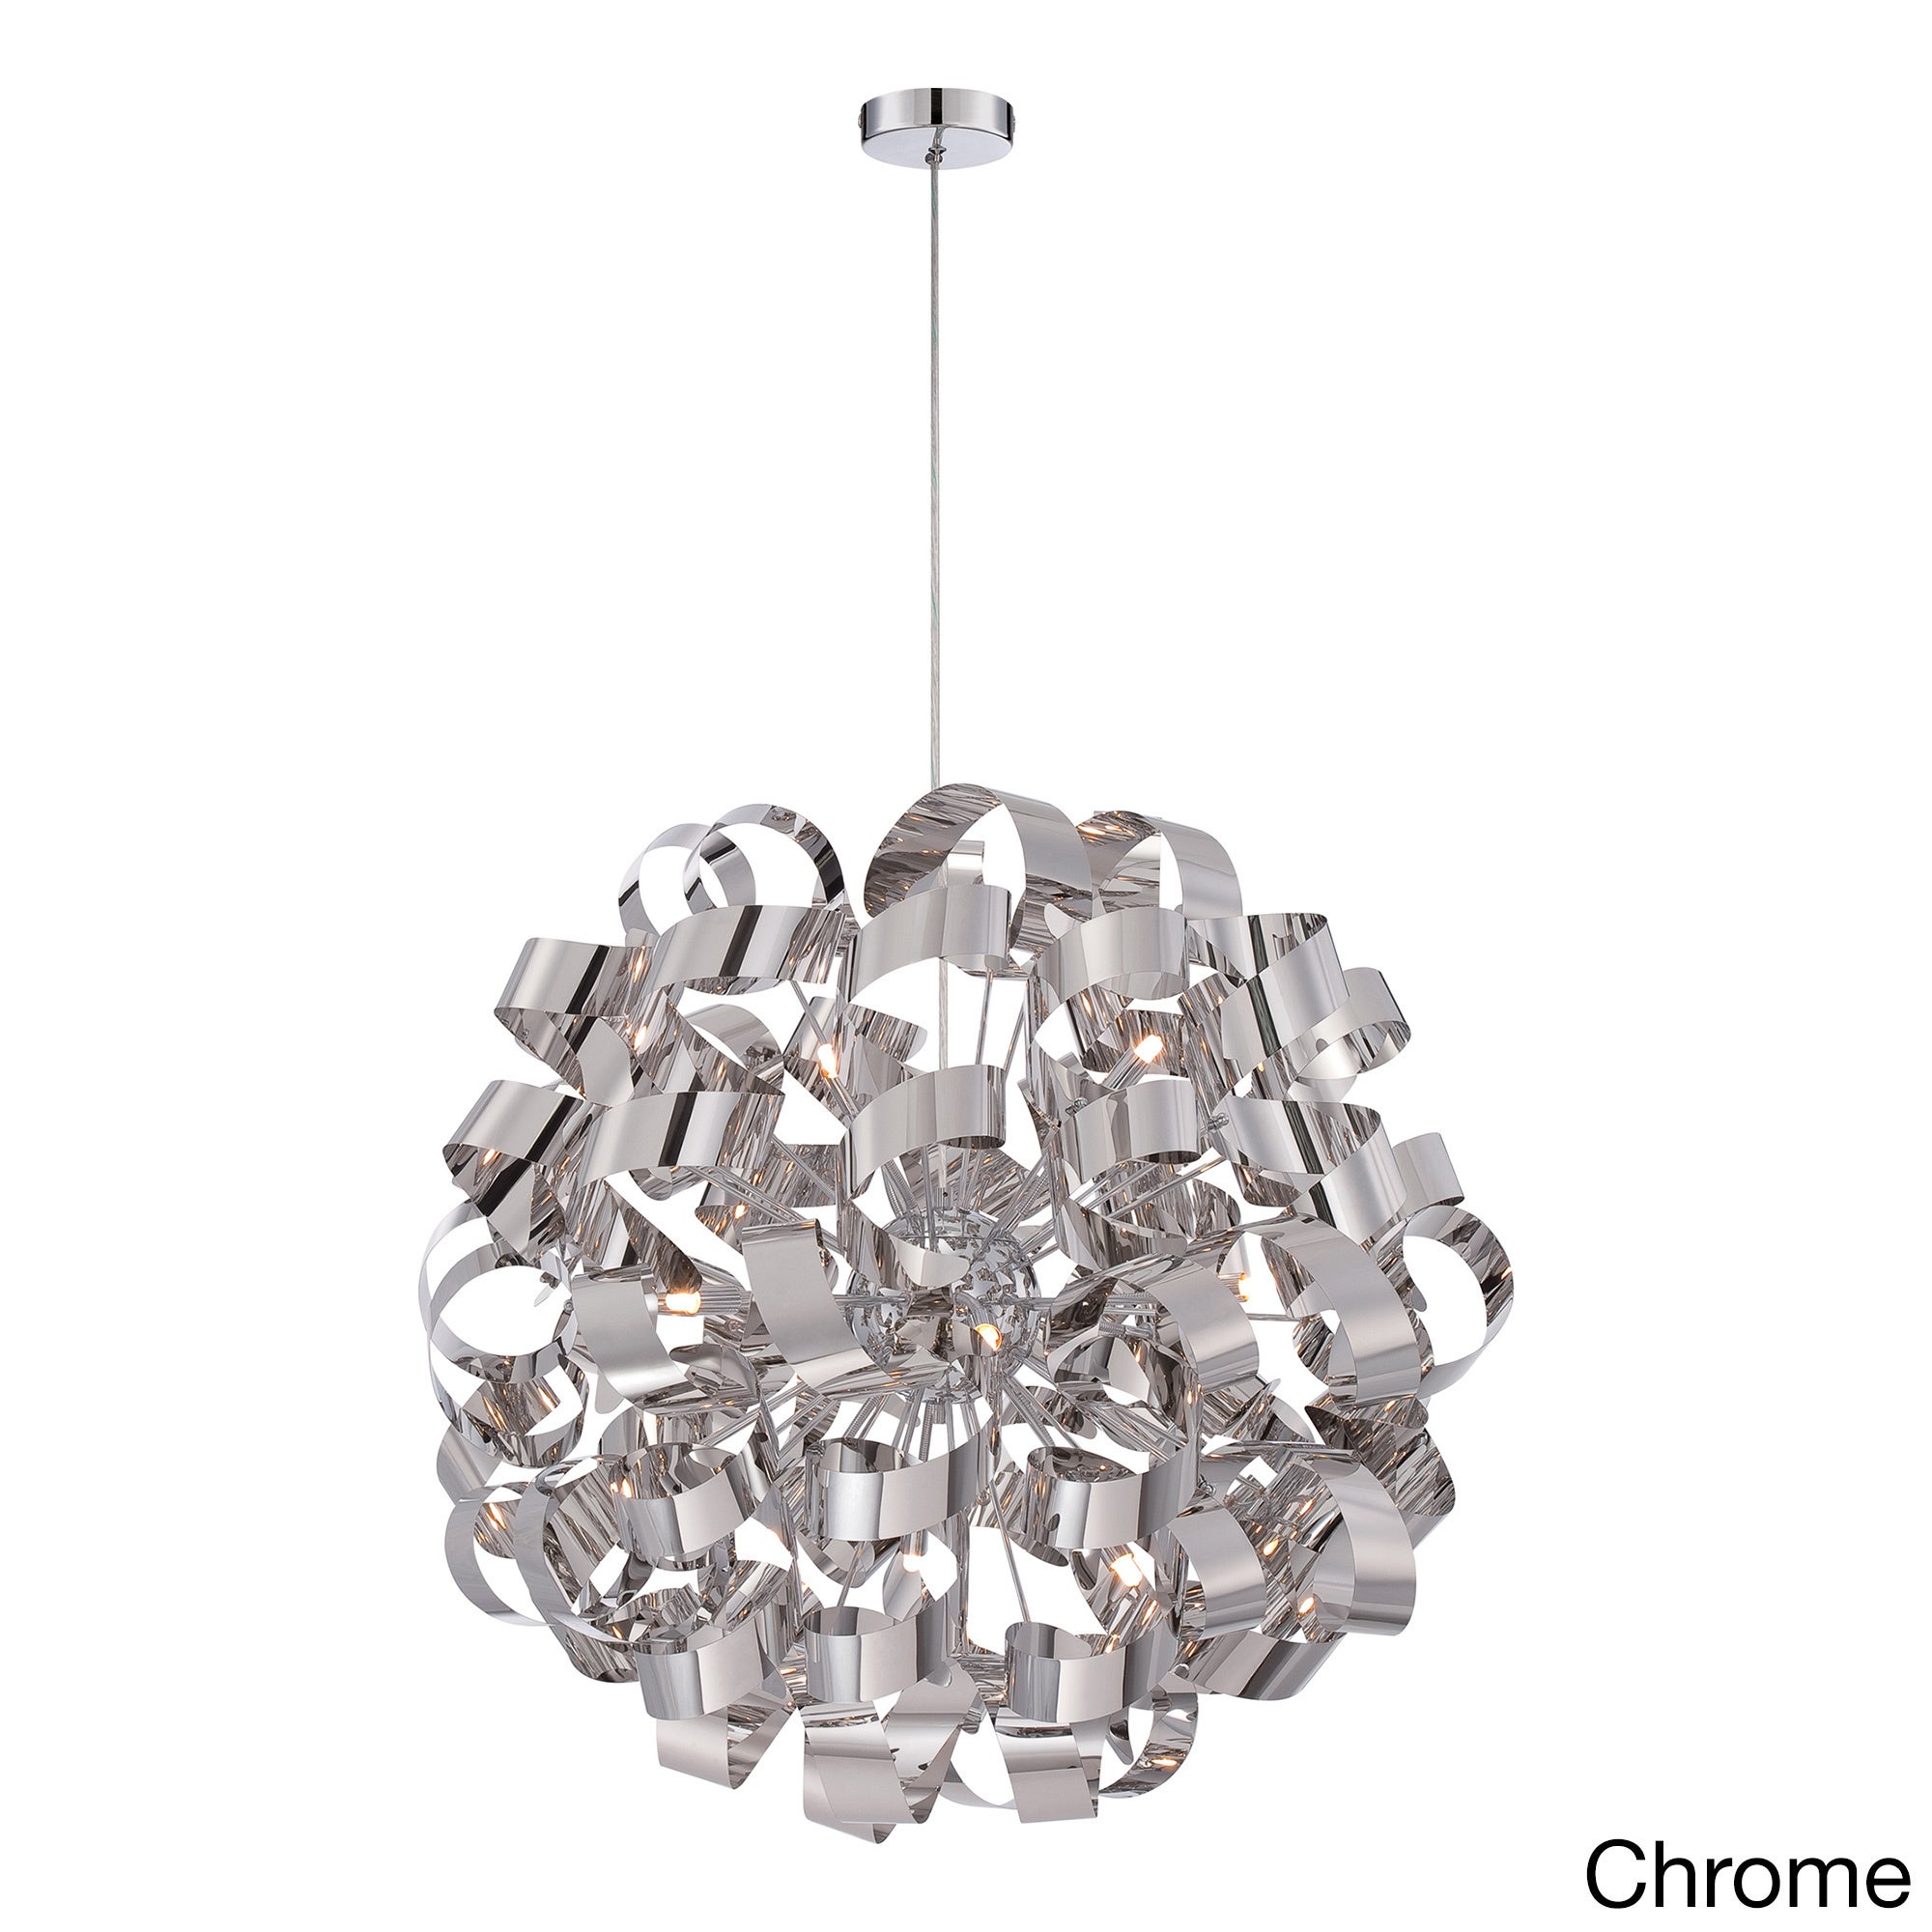 Quoize 12-light Ribbon Curled Steel Large Pendant